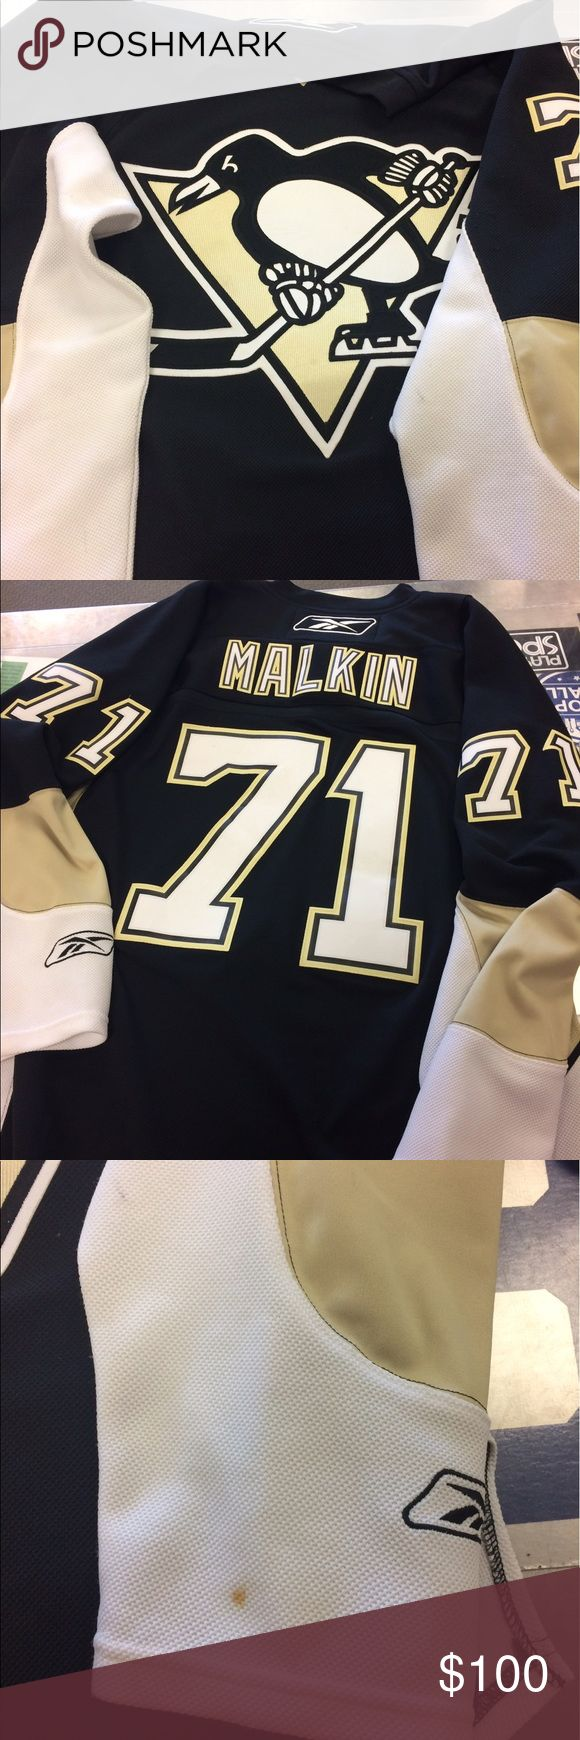 Evgeni Malkin Pittsburgh penguins hockey jersey Size large evgeni malkin Pittsburgh penguins hockey jersey. This an officially licensed reebok NHL hockey jersey. Retails around $200. Open to offers and trades!!! Reebok Shirts Tees - Long Sleeve